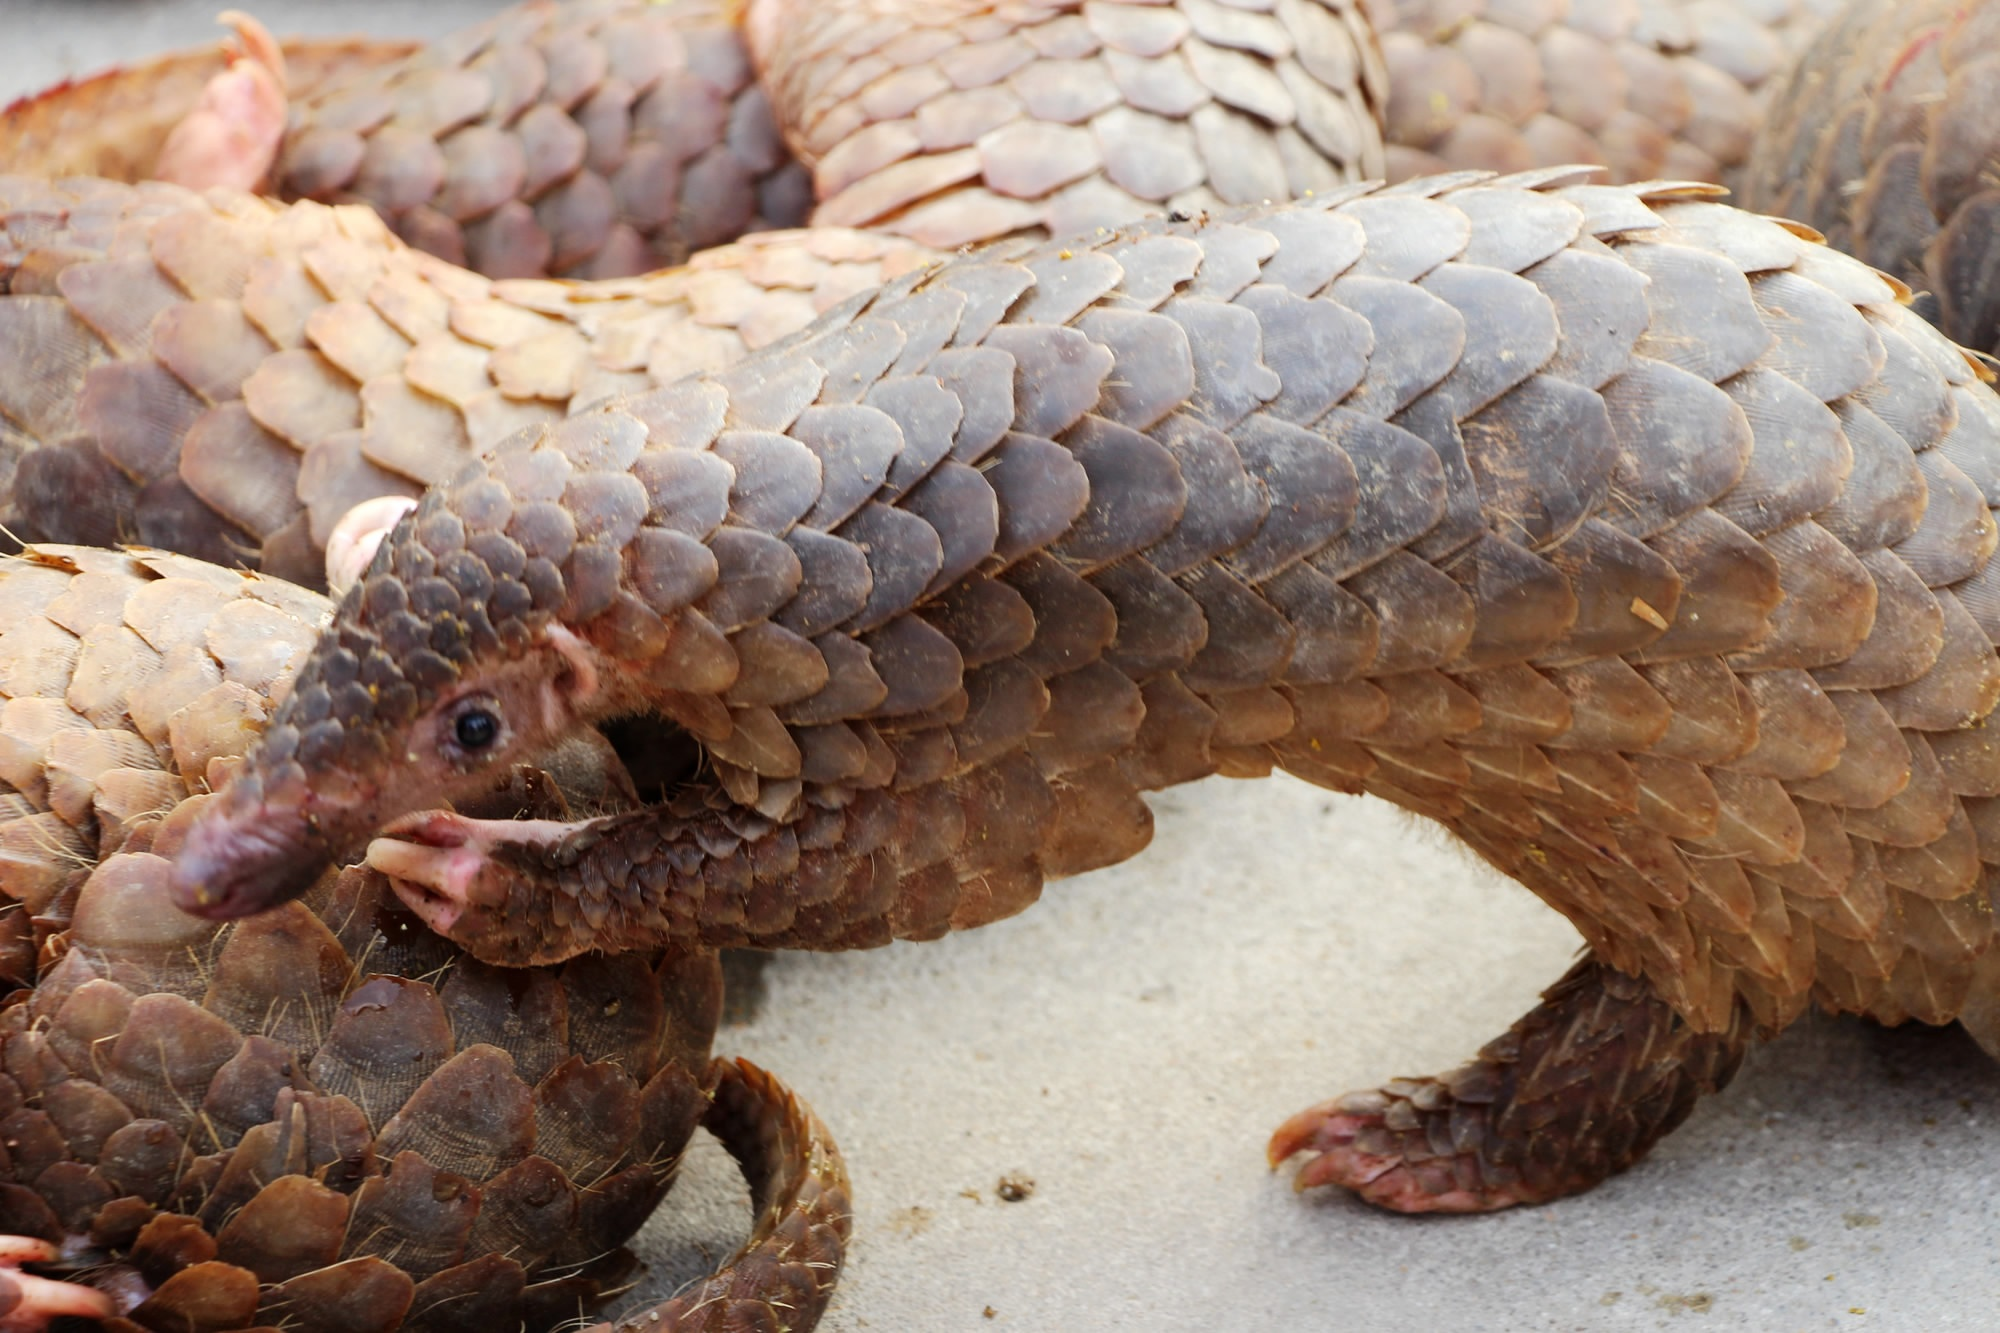 Nearly 900,000 pangolins trafficked in Southeast Asia: watchdog